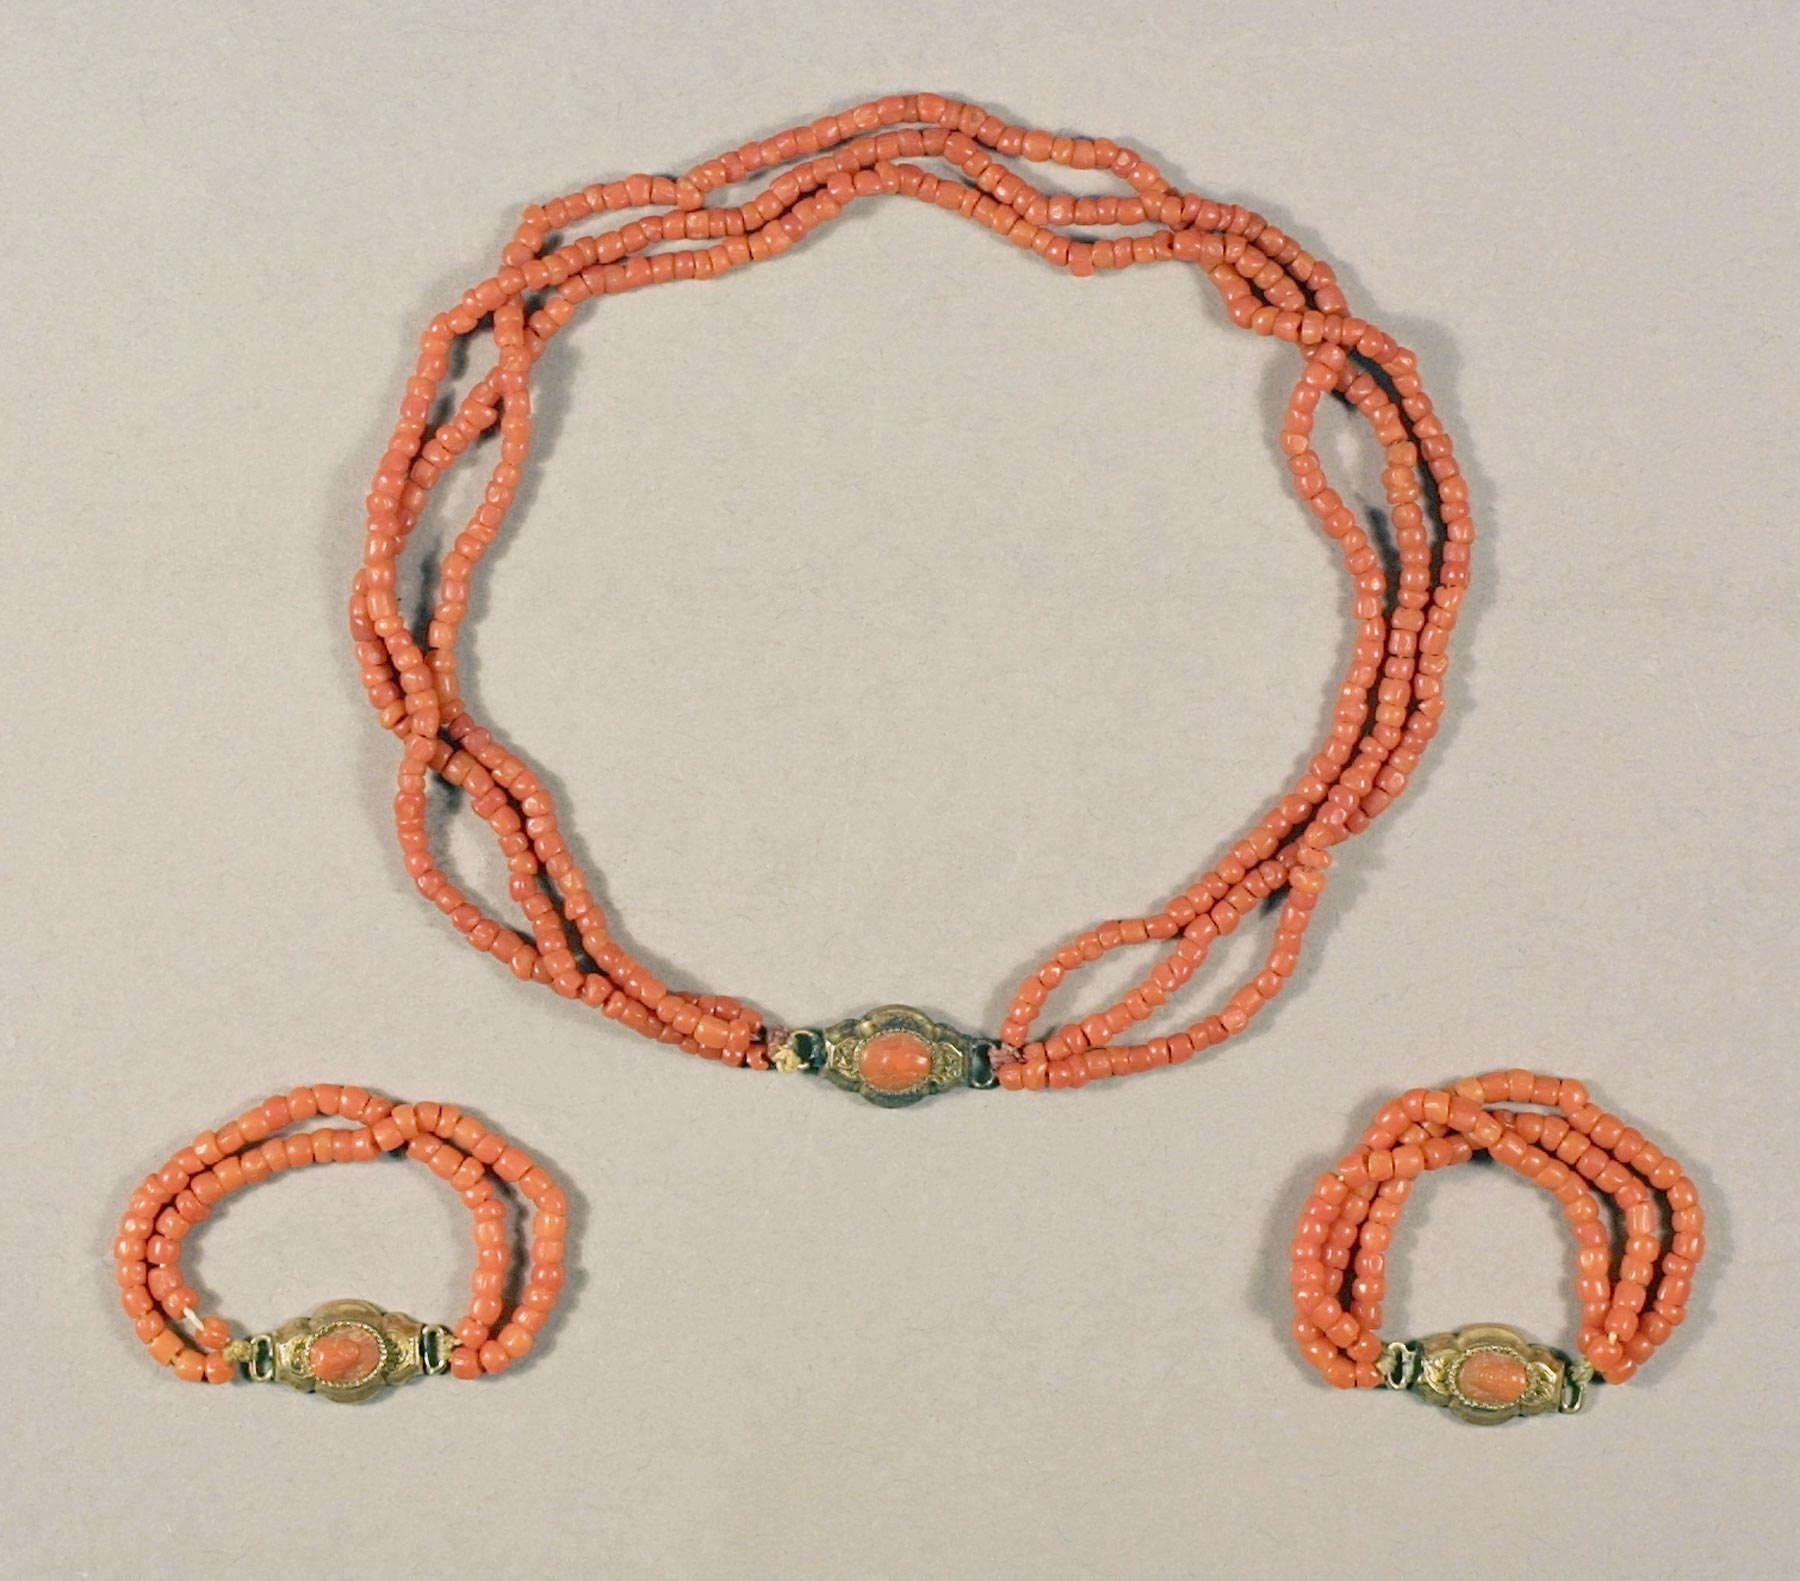 Coral bead child's necklace and matching armlets, Italy, ca. 1840-1880. Coral, gold. Historic New England, 1933.262.